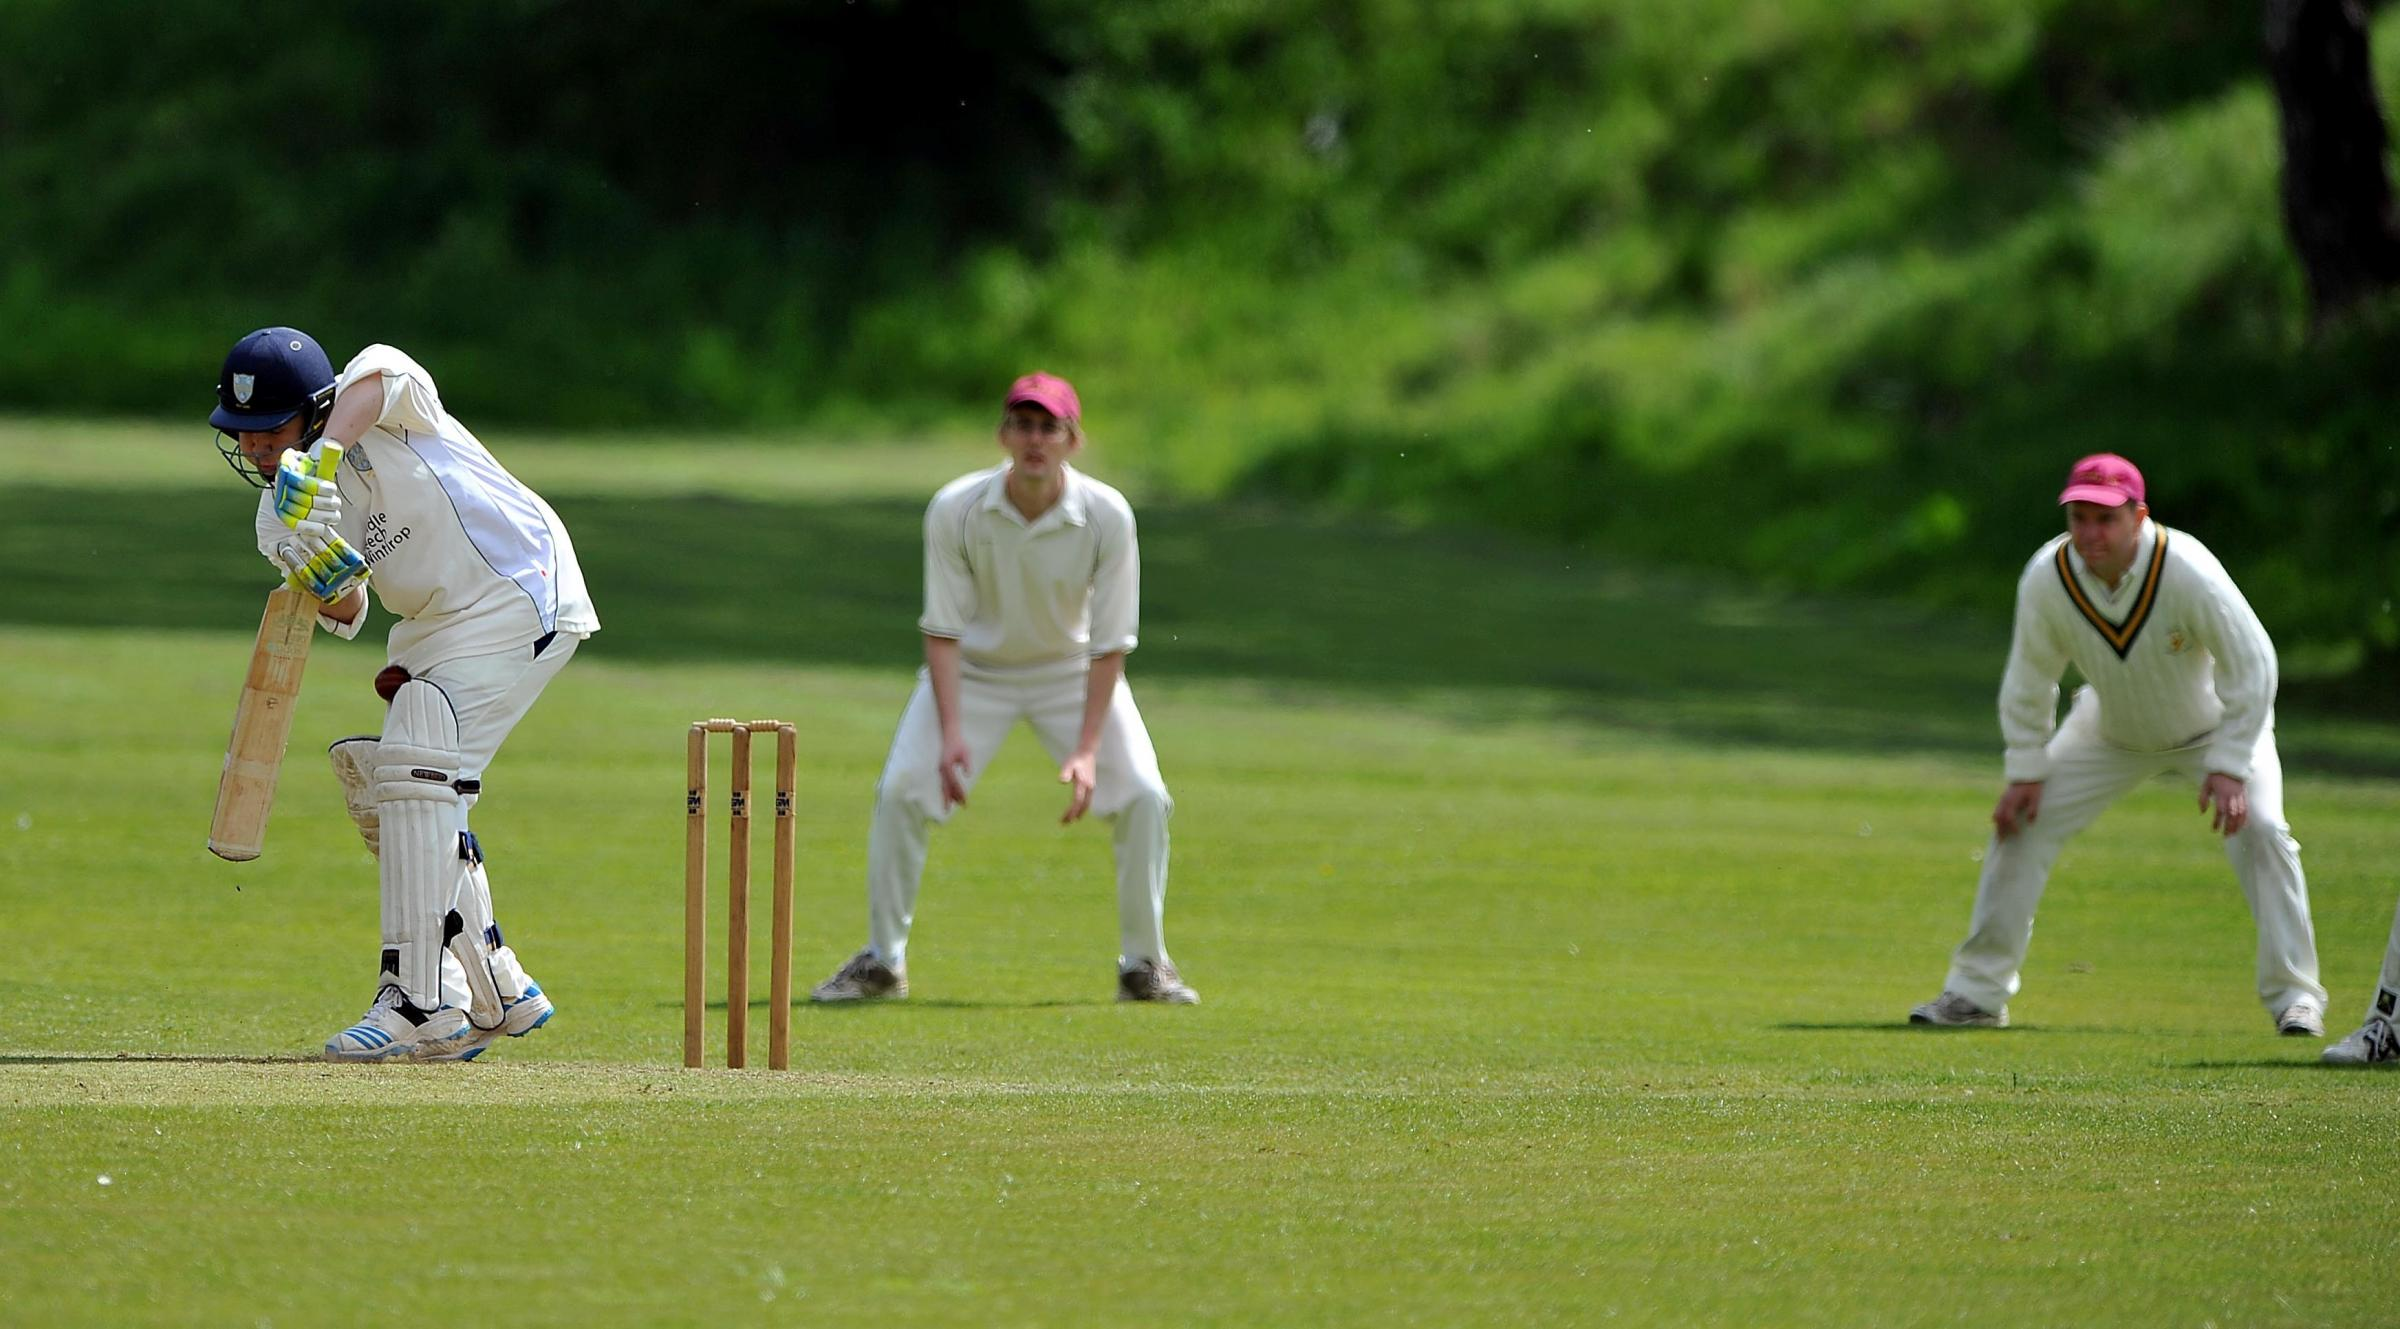 Craven League ..Skipton (batting) V Connonley..Batting for Skipton is Ian Henderson.